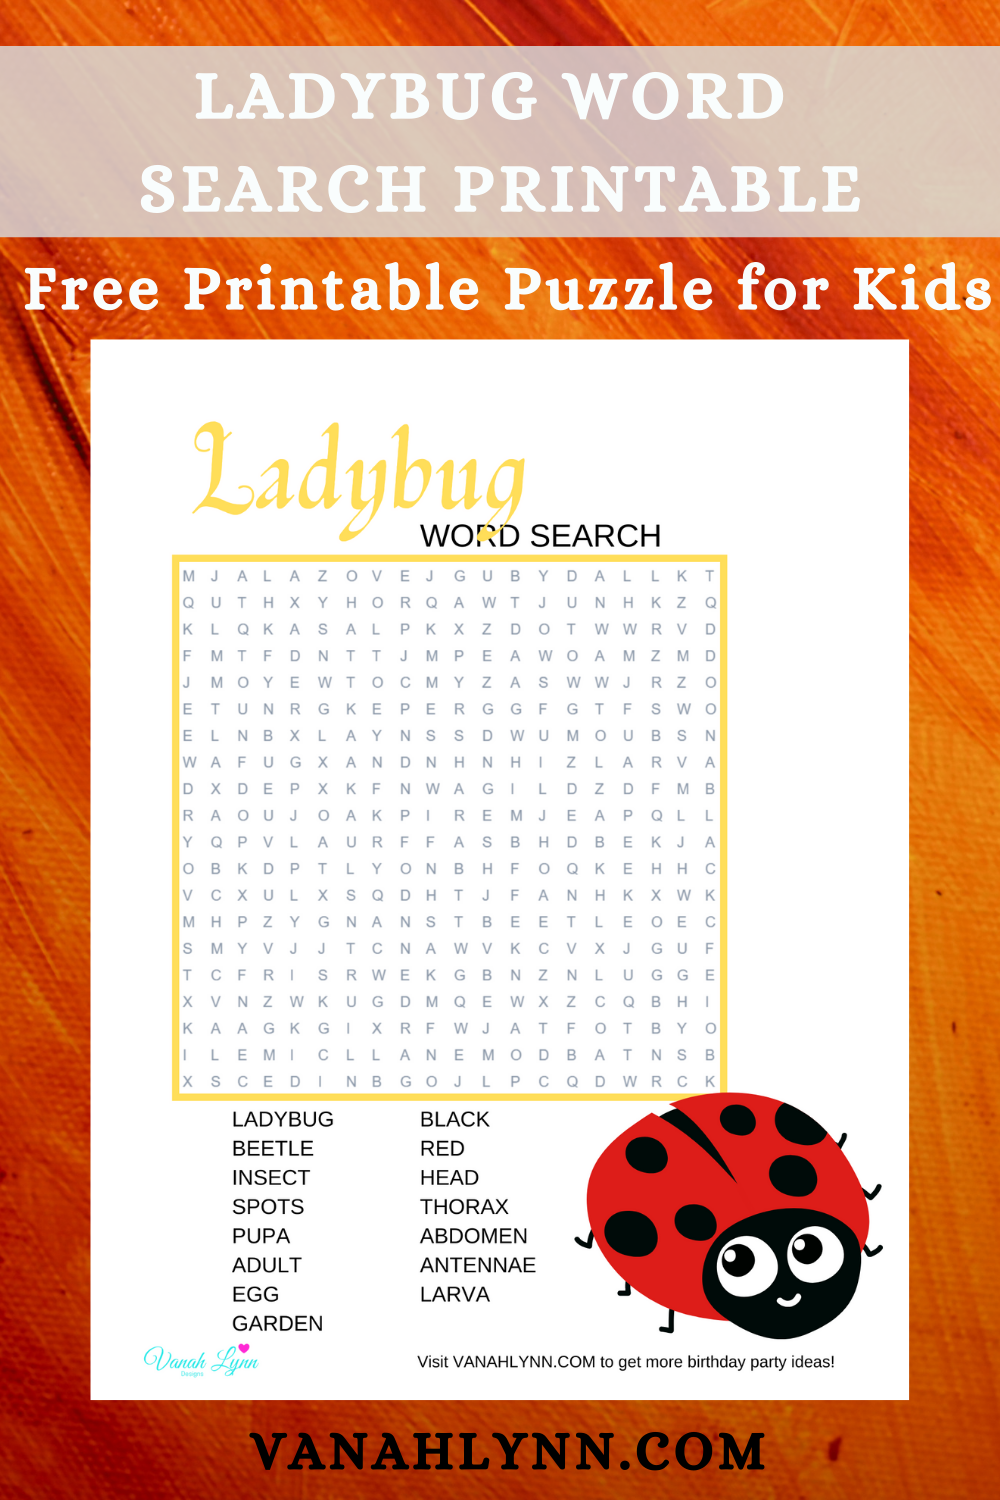 ladybug themed game for kids birthday party